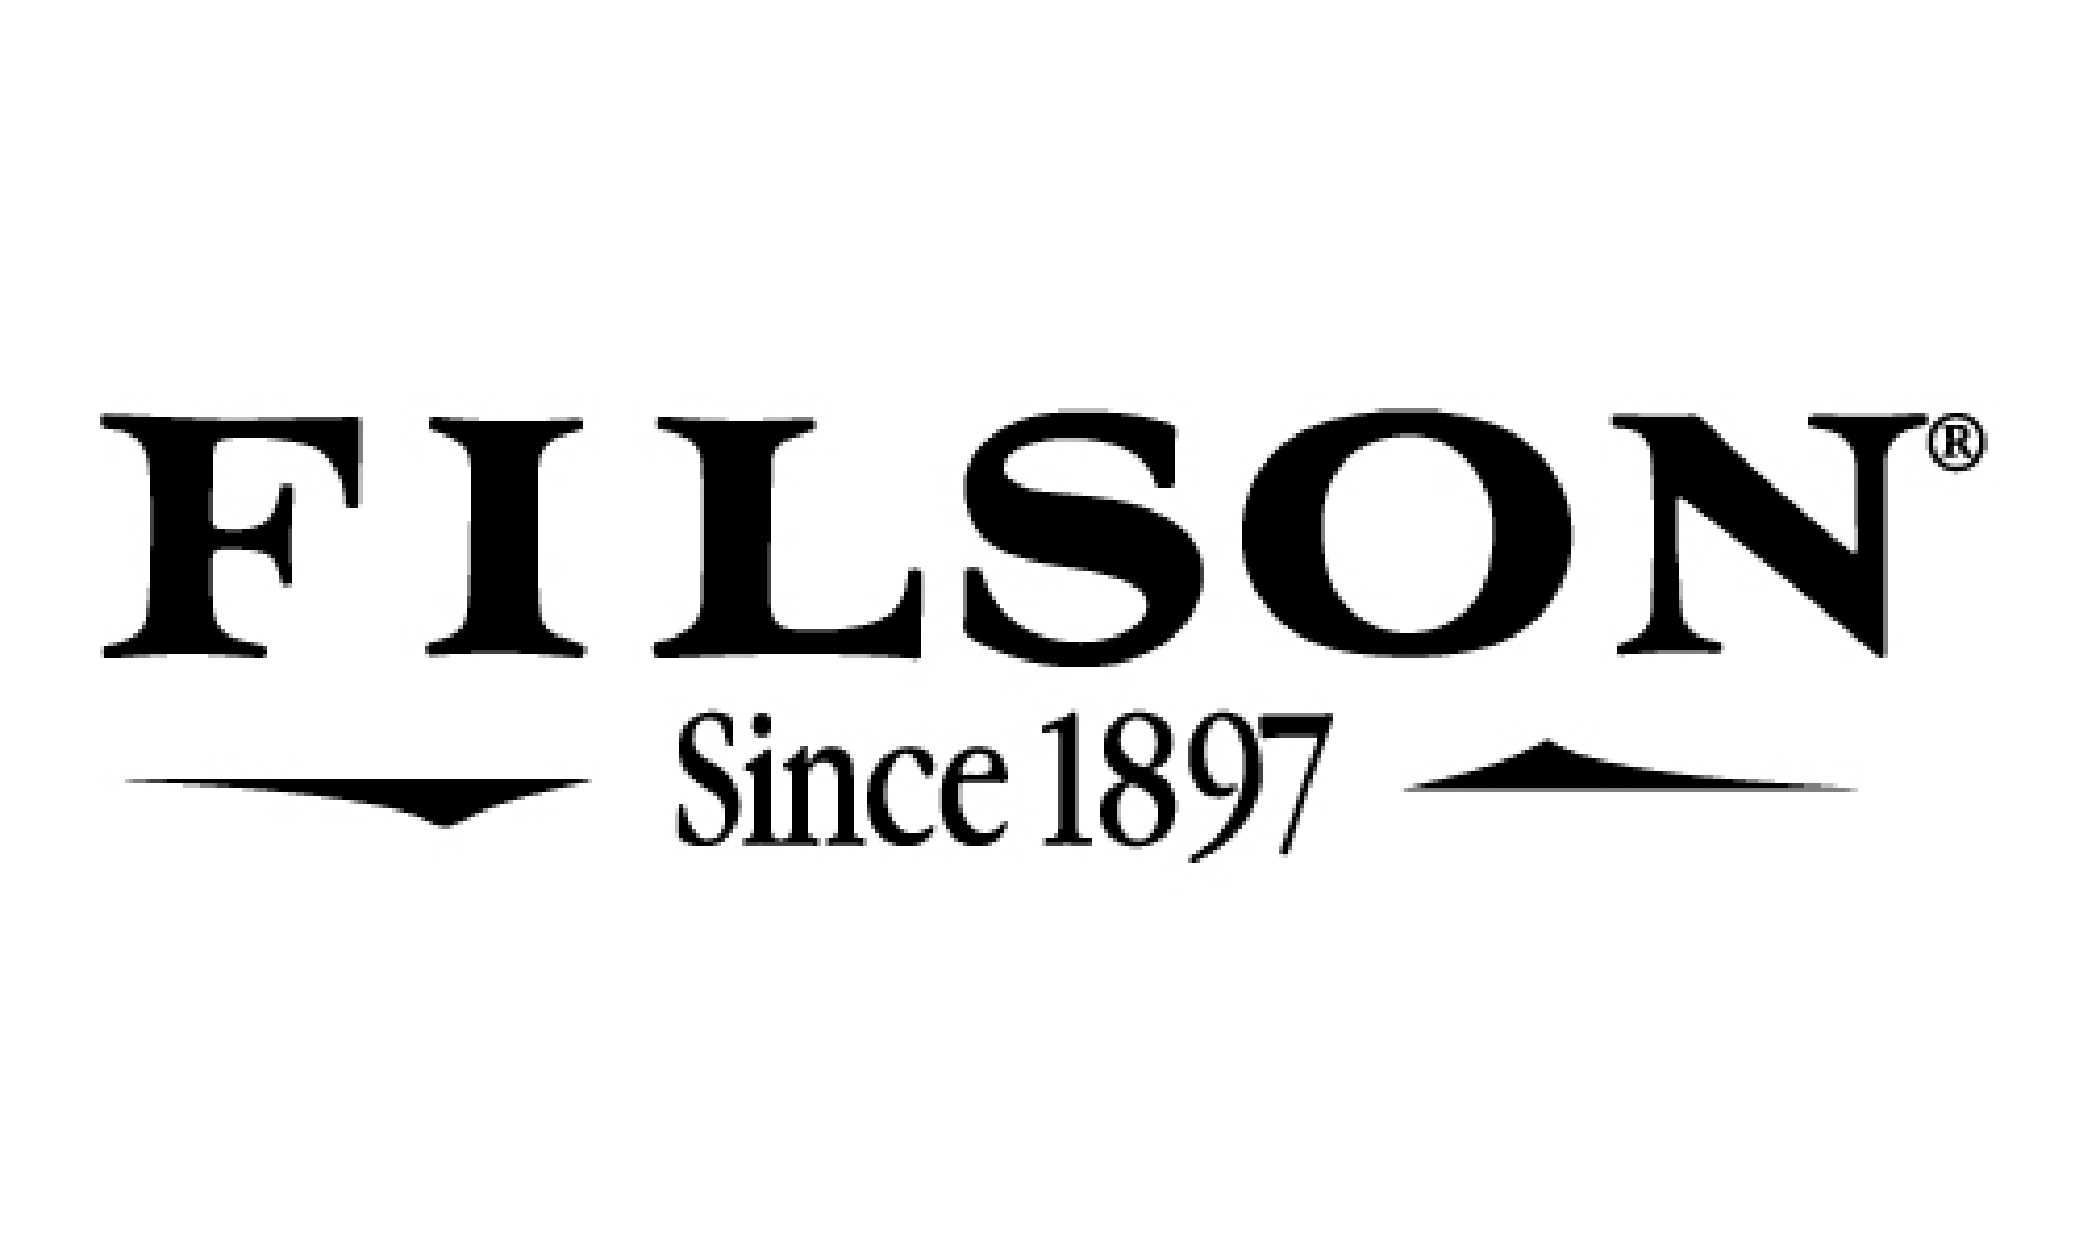 Filson  stands for the highest quality and most durable apparel and accessories available.